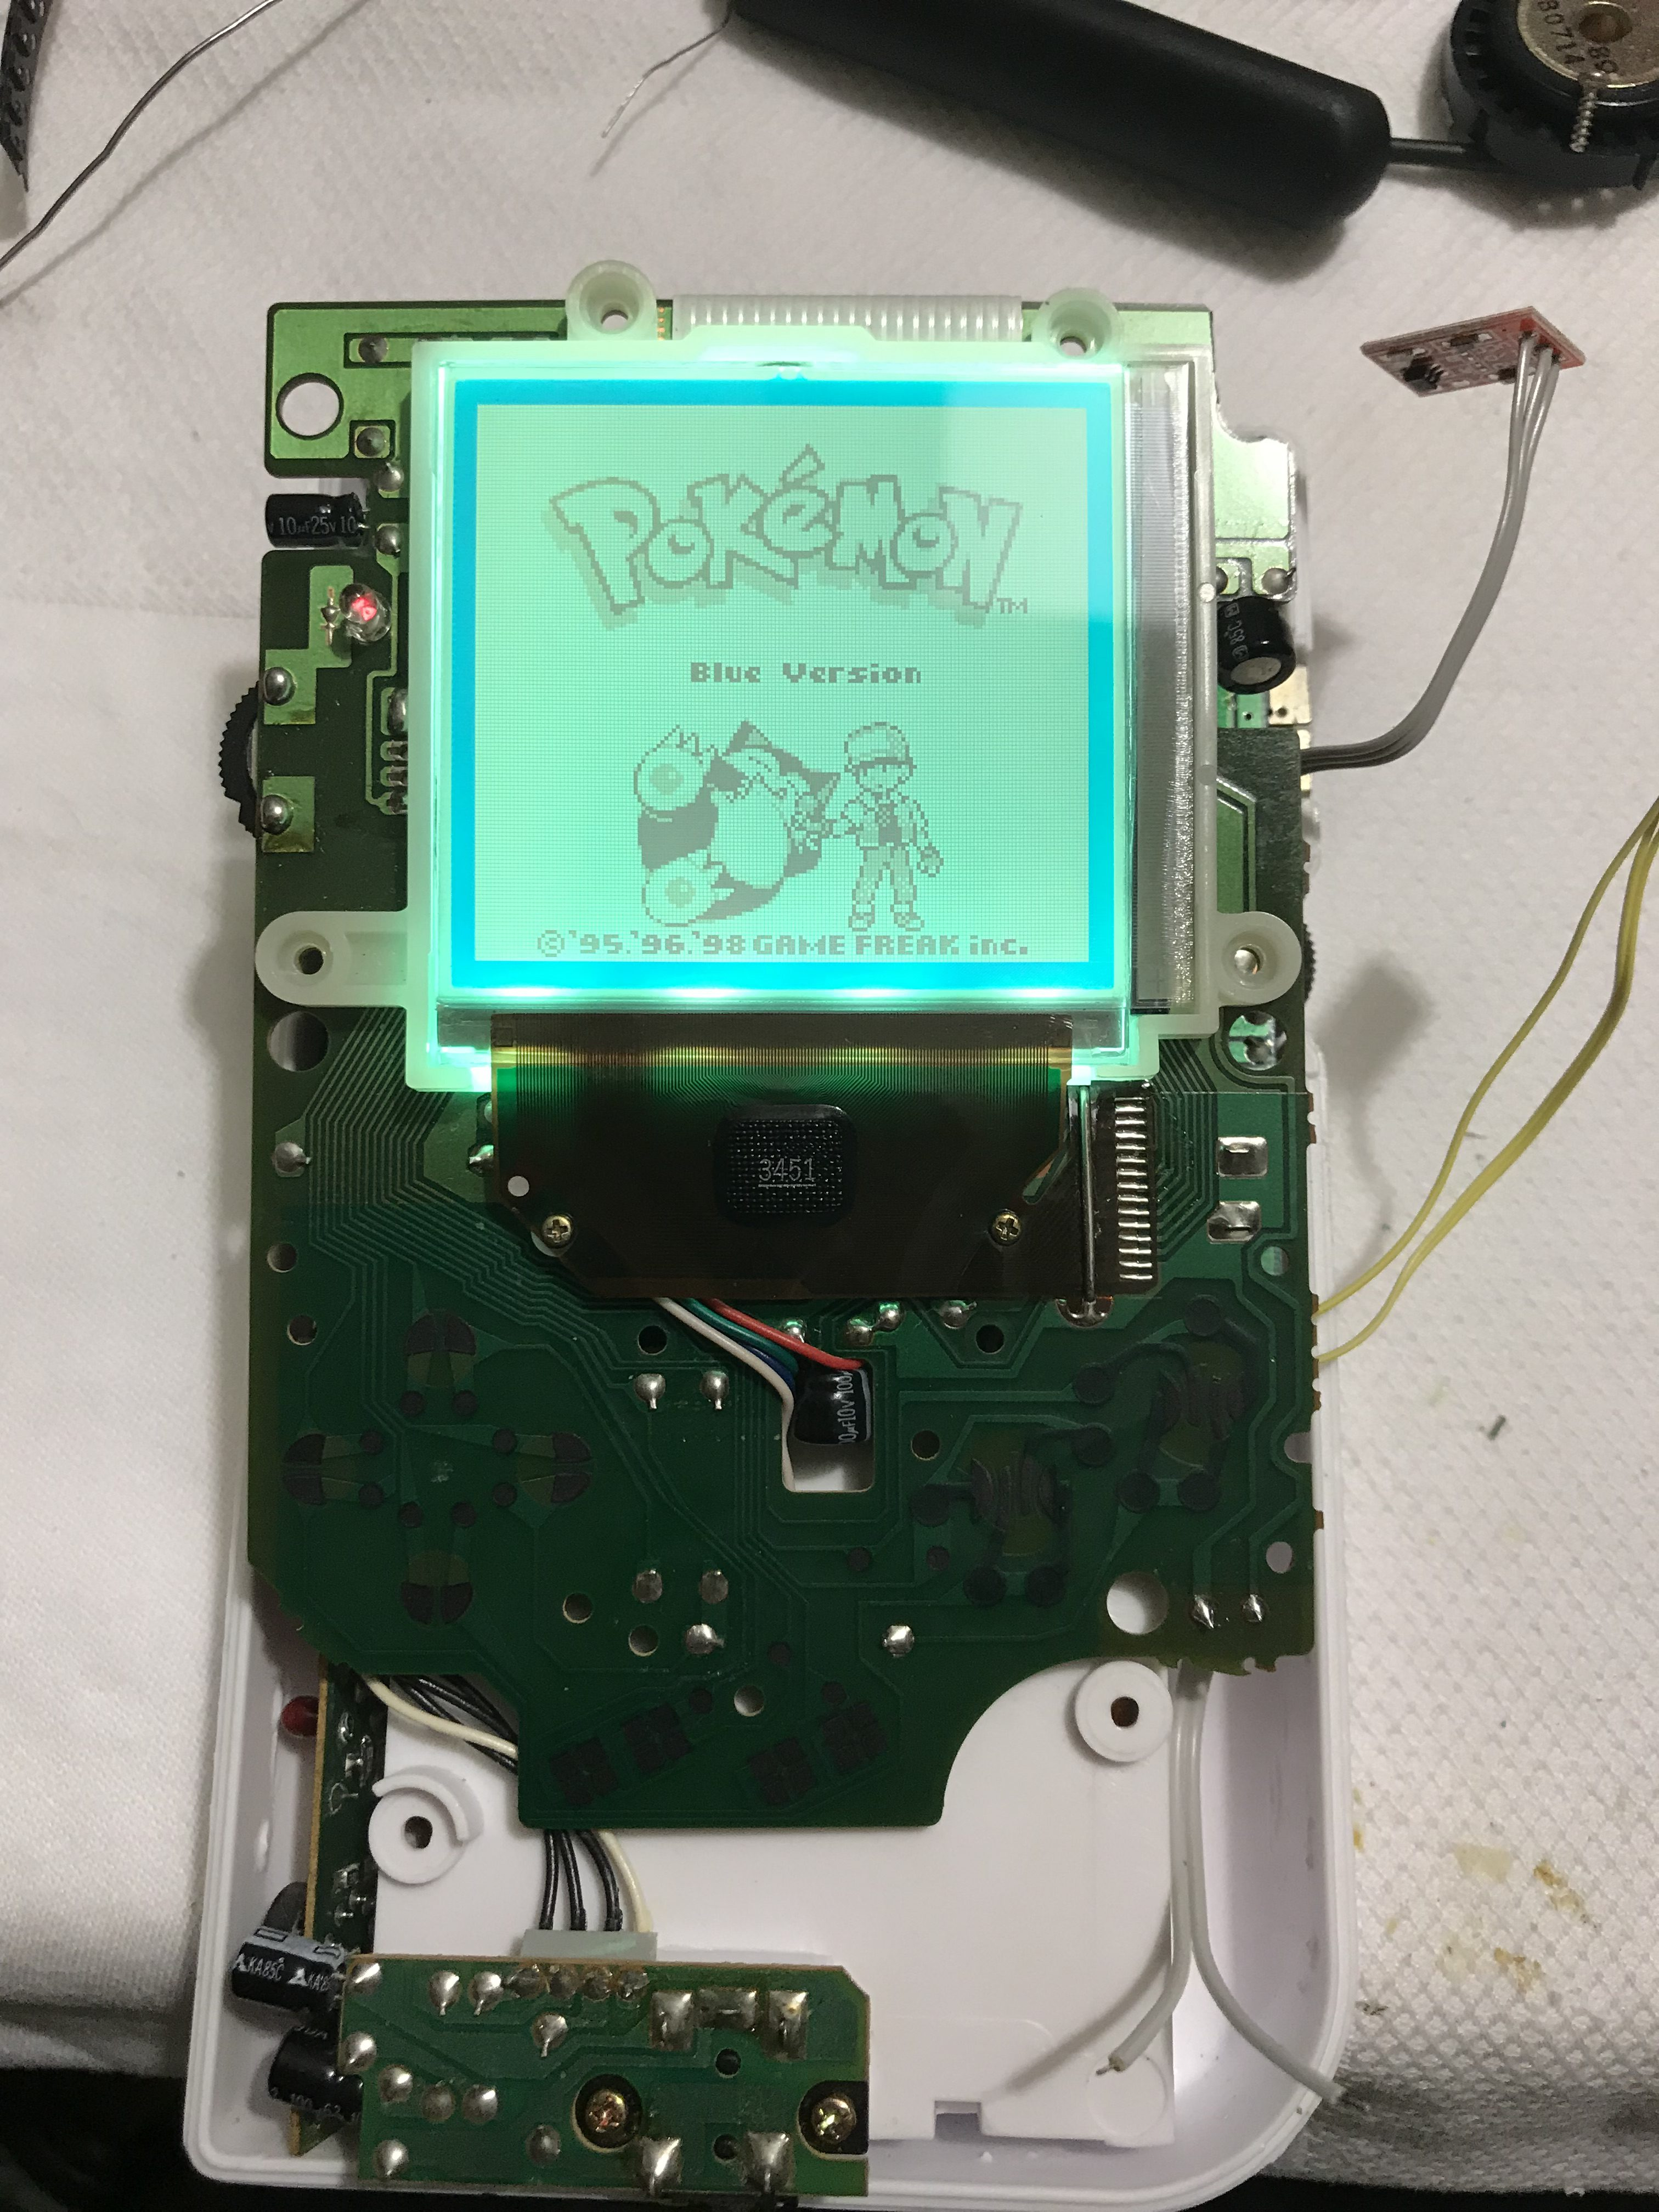 Backlighting Your Gameboy DMG – The Right Way